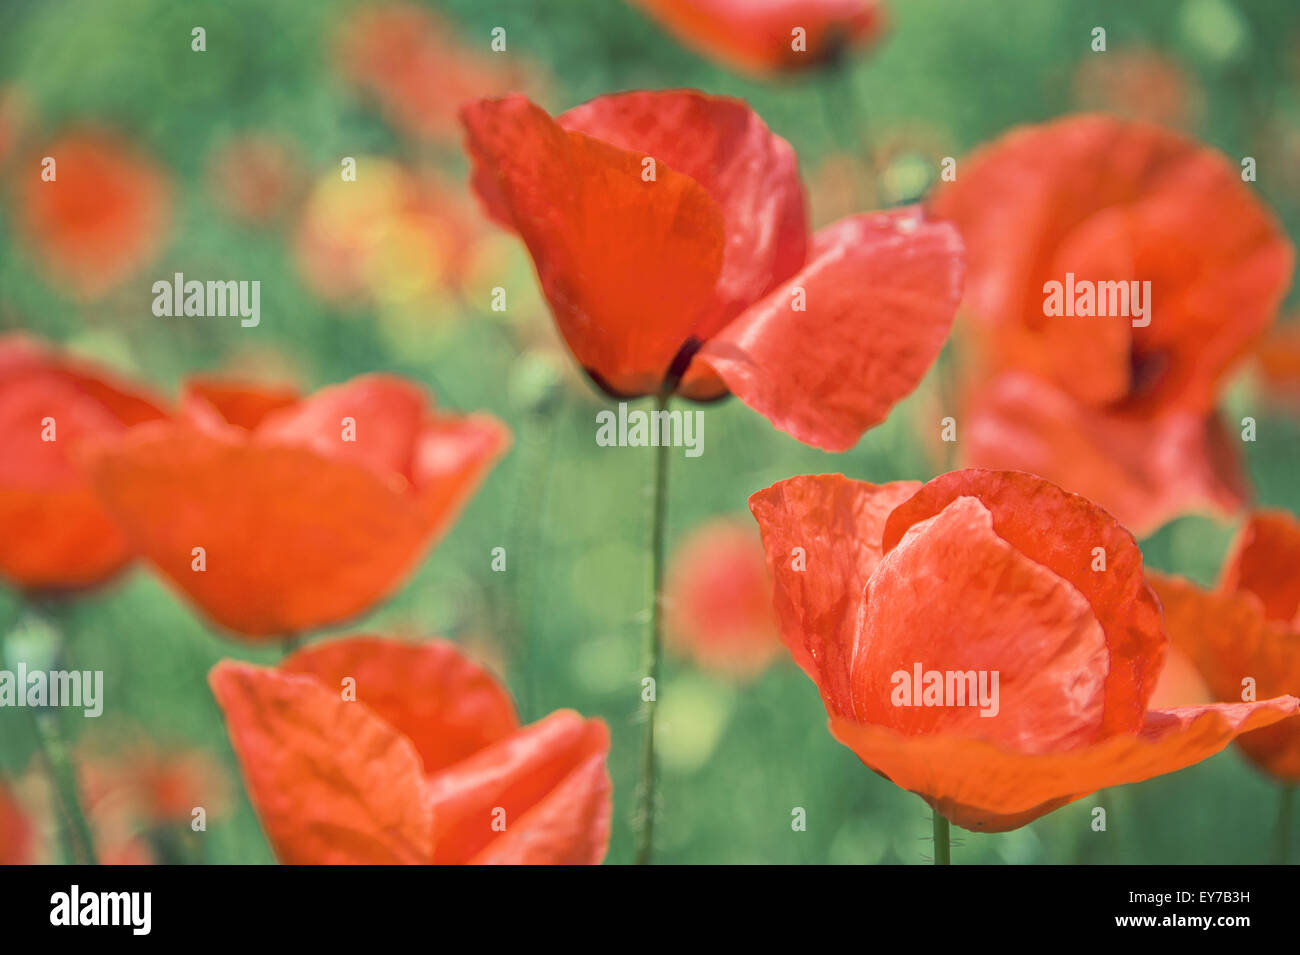 Close-up of red poppies (Papaver rhoeas) - Stock Image